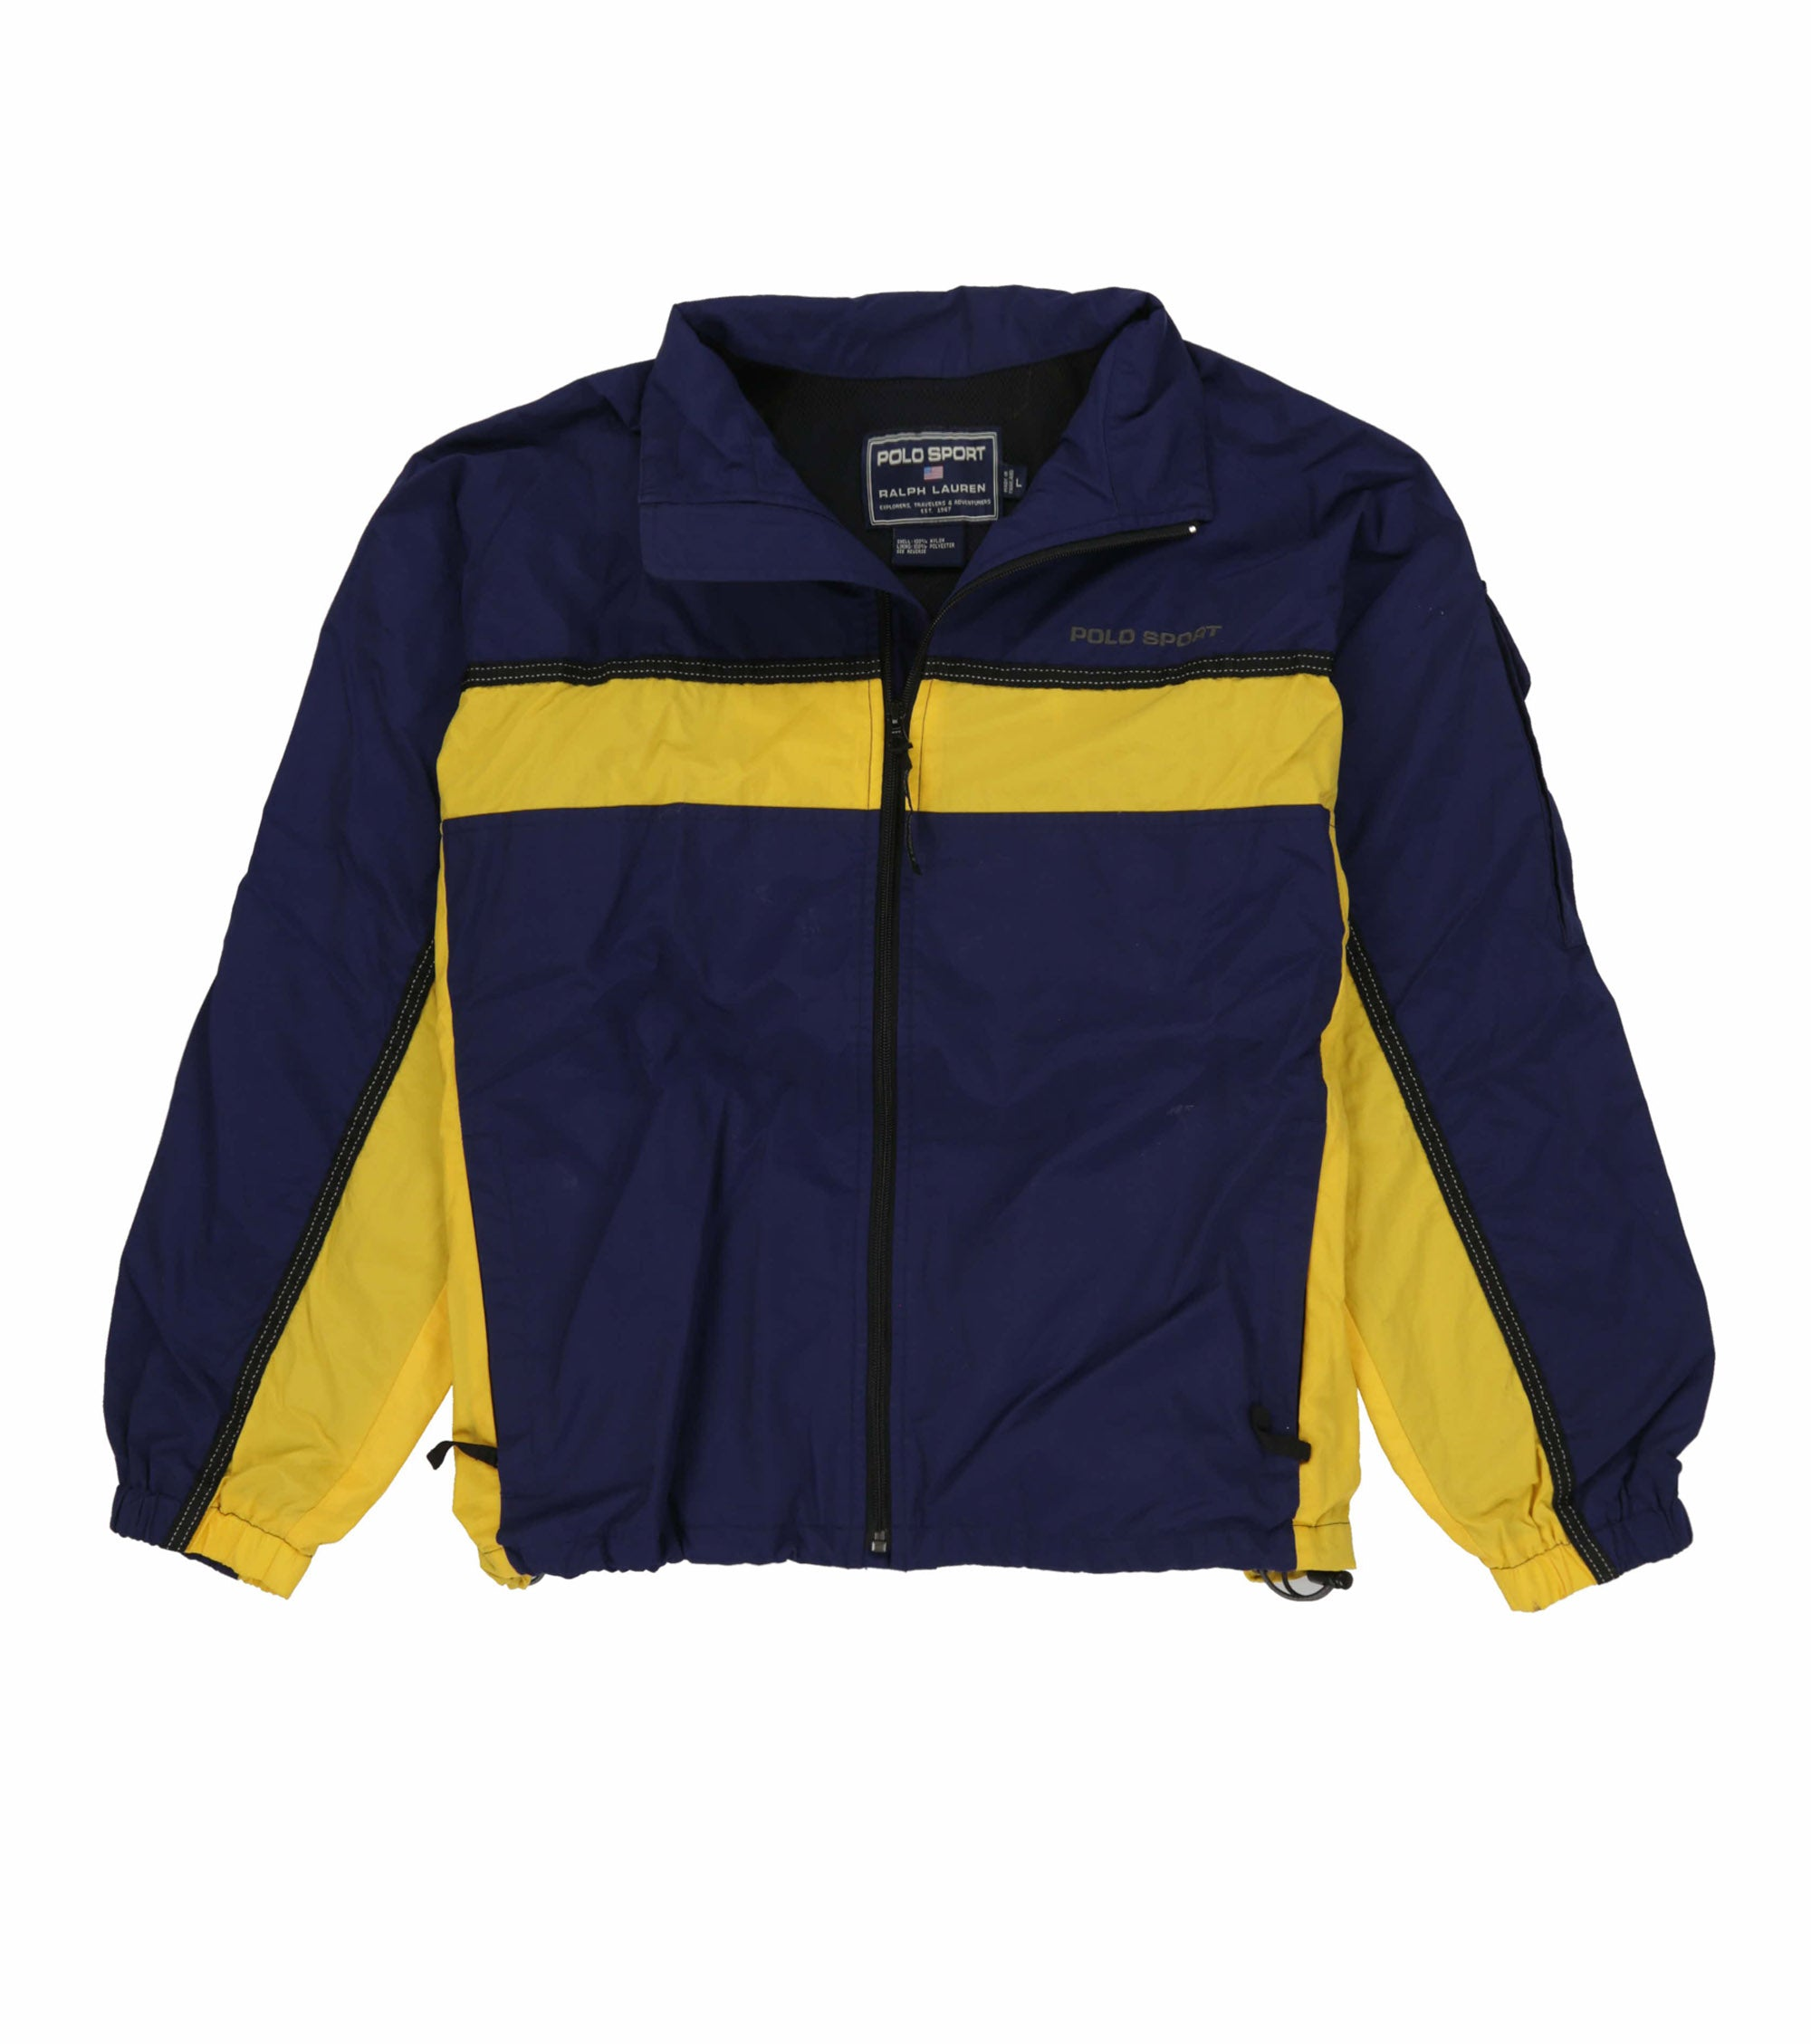 POLO SPORT EMB SPELL OUT TRACKSUIT // NAVY YELLOW